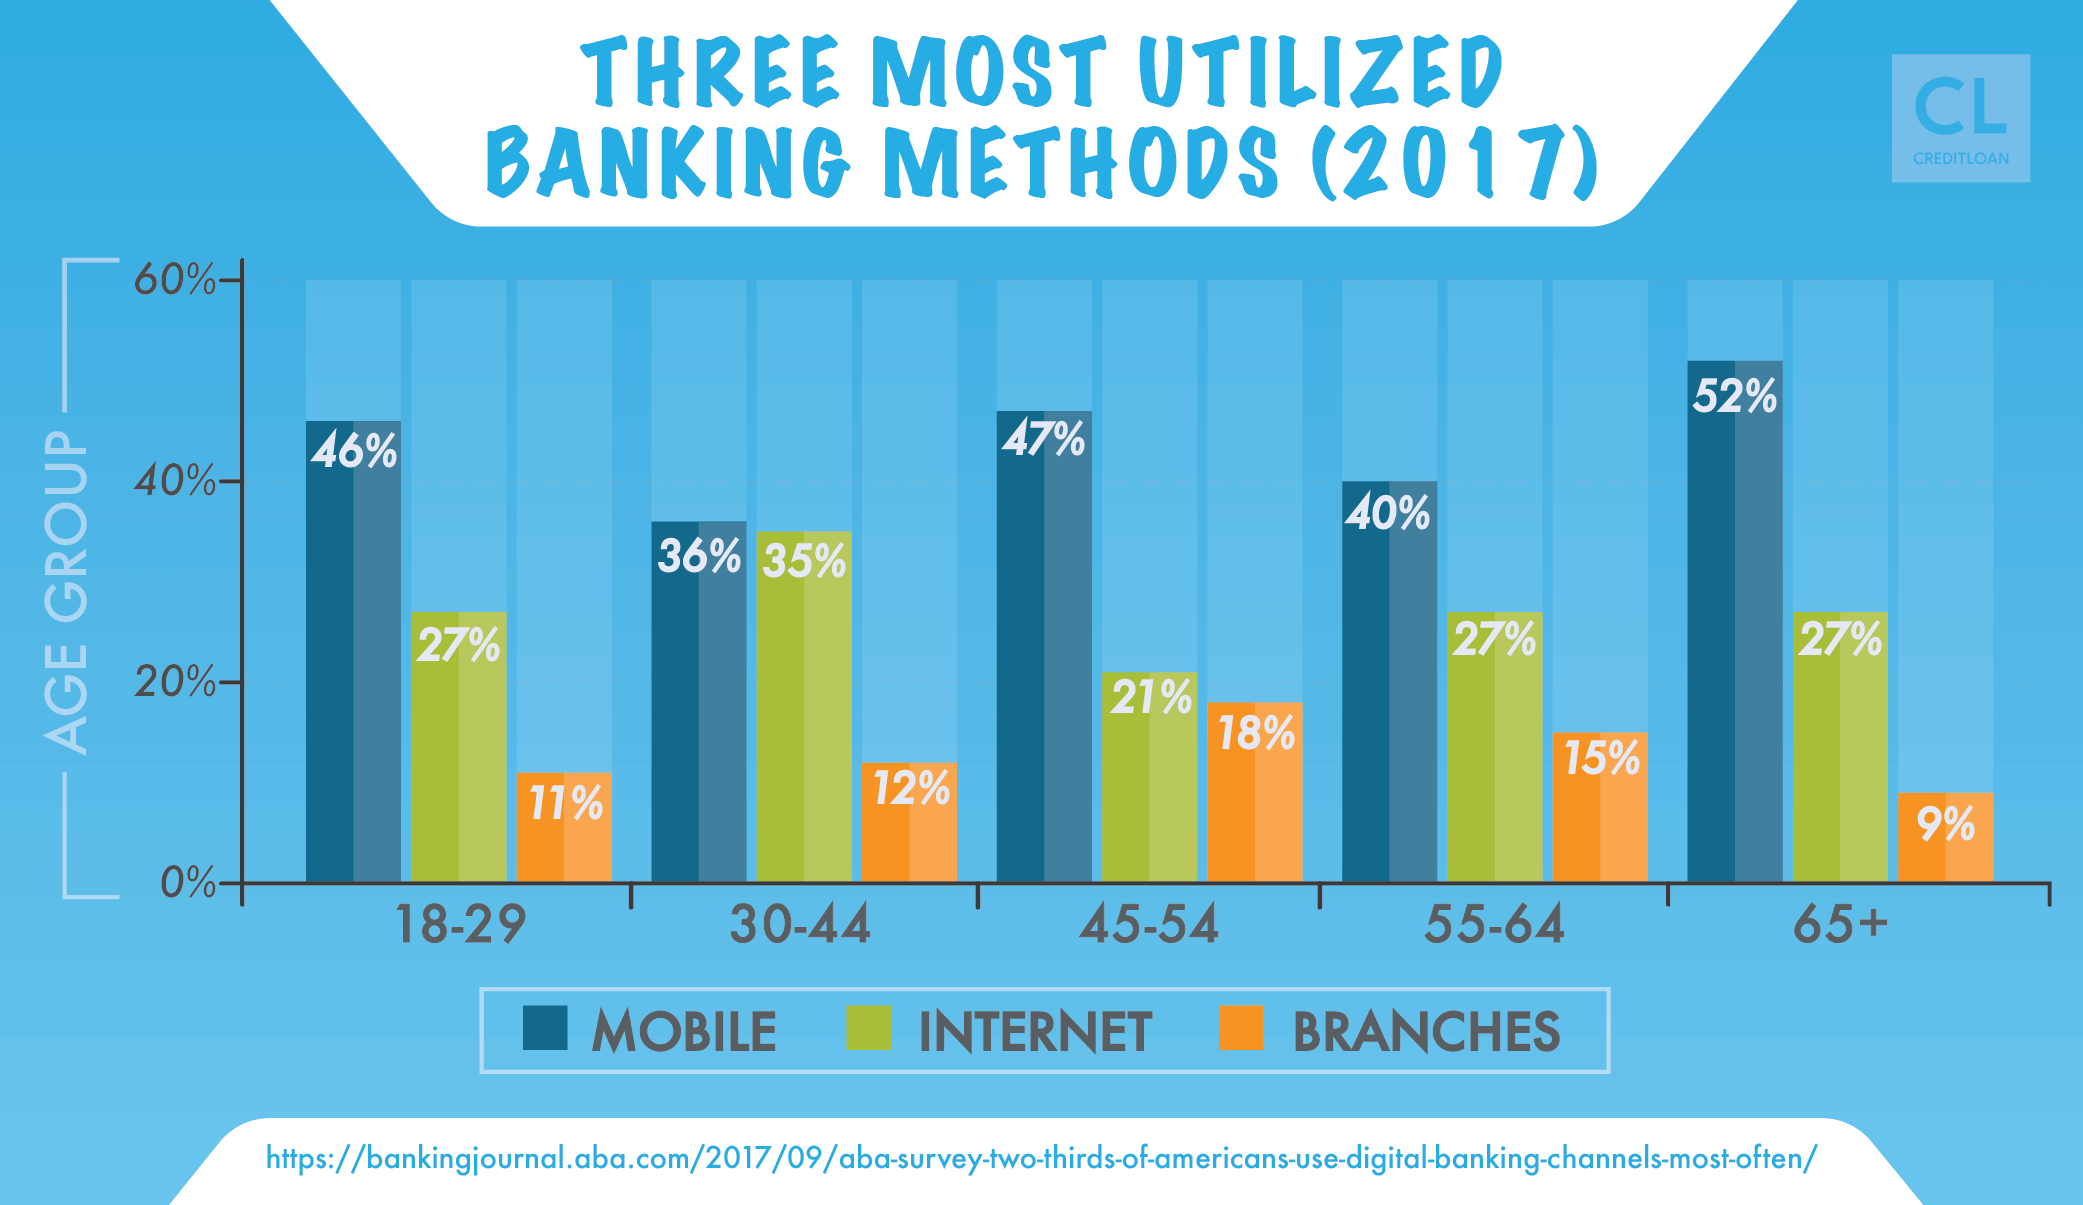 3 Most Utilized Banking Methods 2017